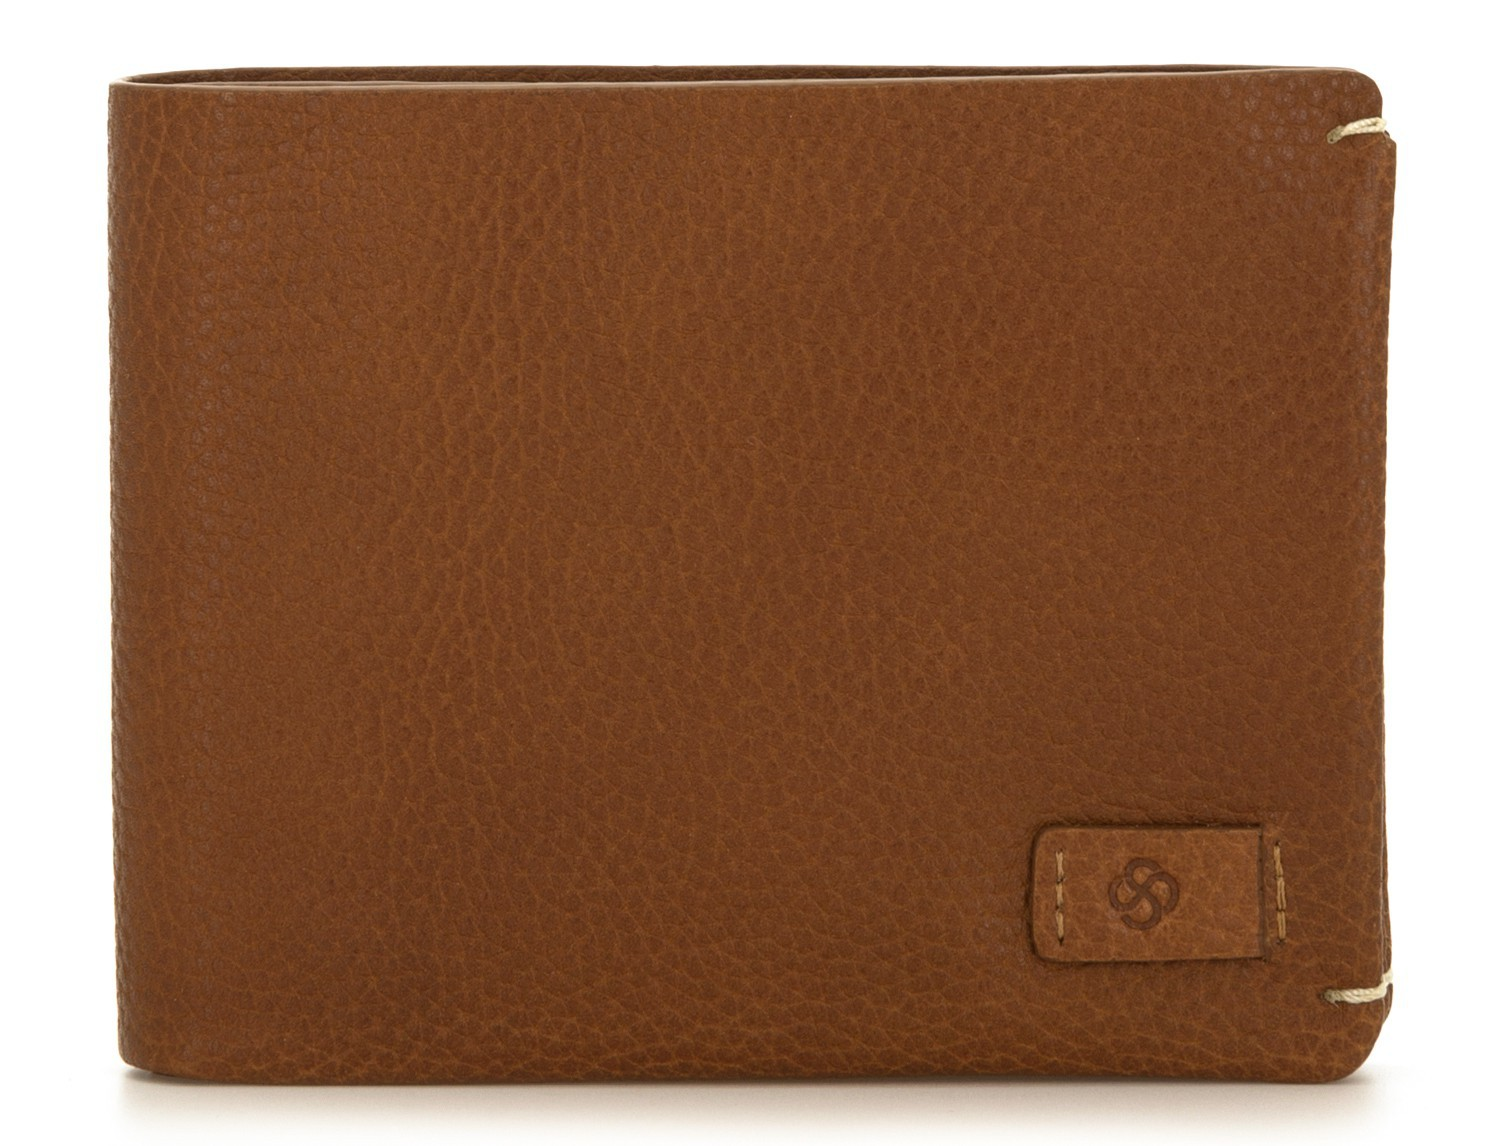 leather wallet for credit cards light brown front